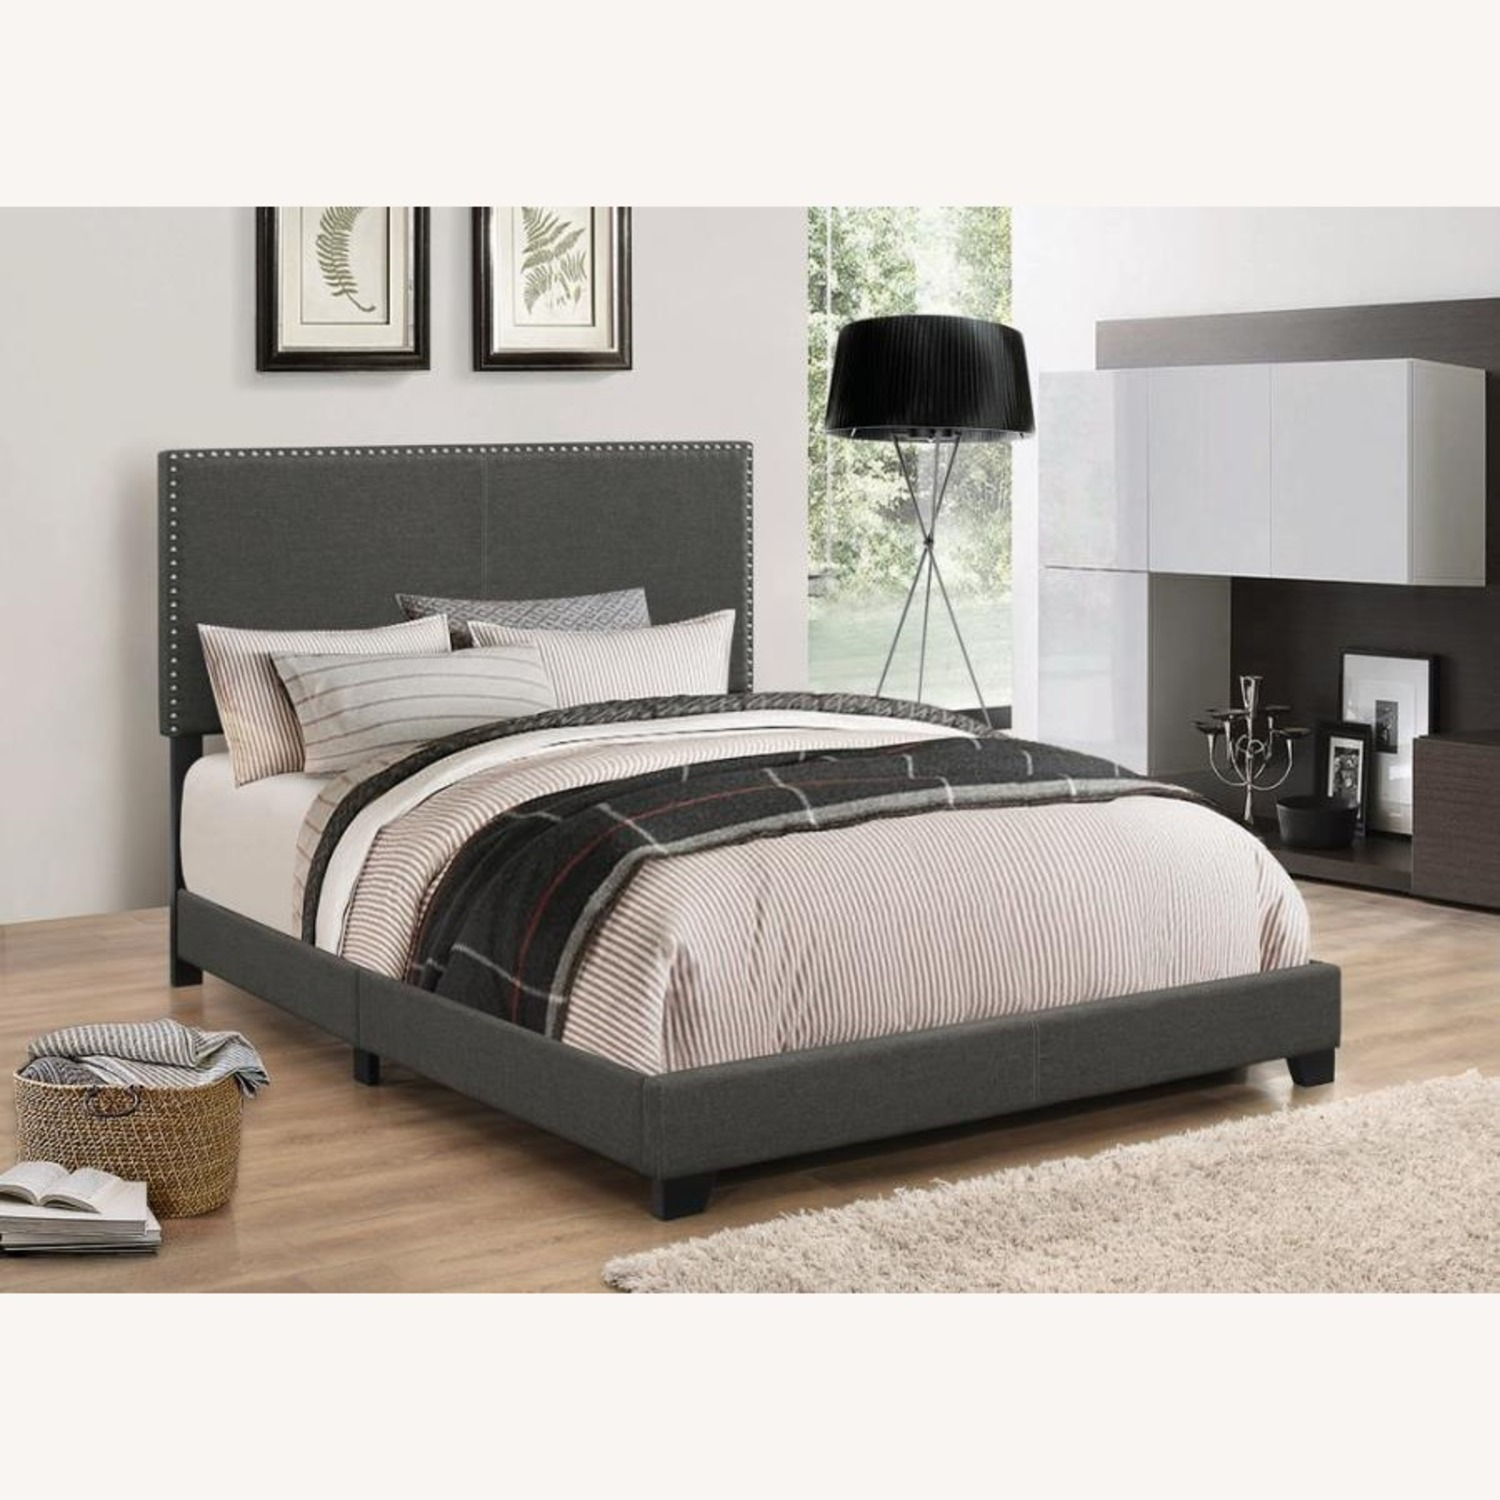 King Bed In Charcoal Fabric Chrome Nailhead Trim - image-1